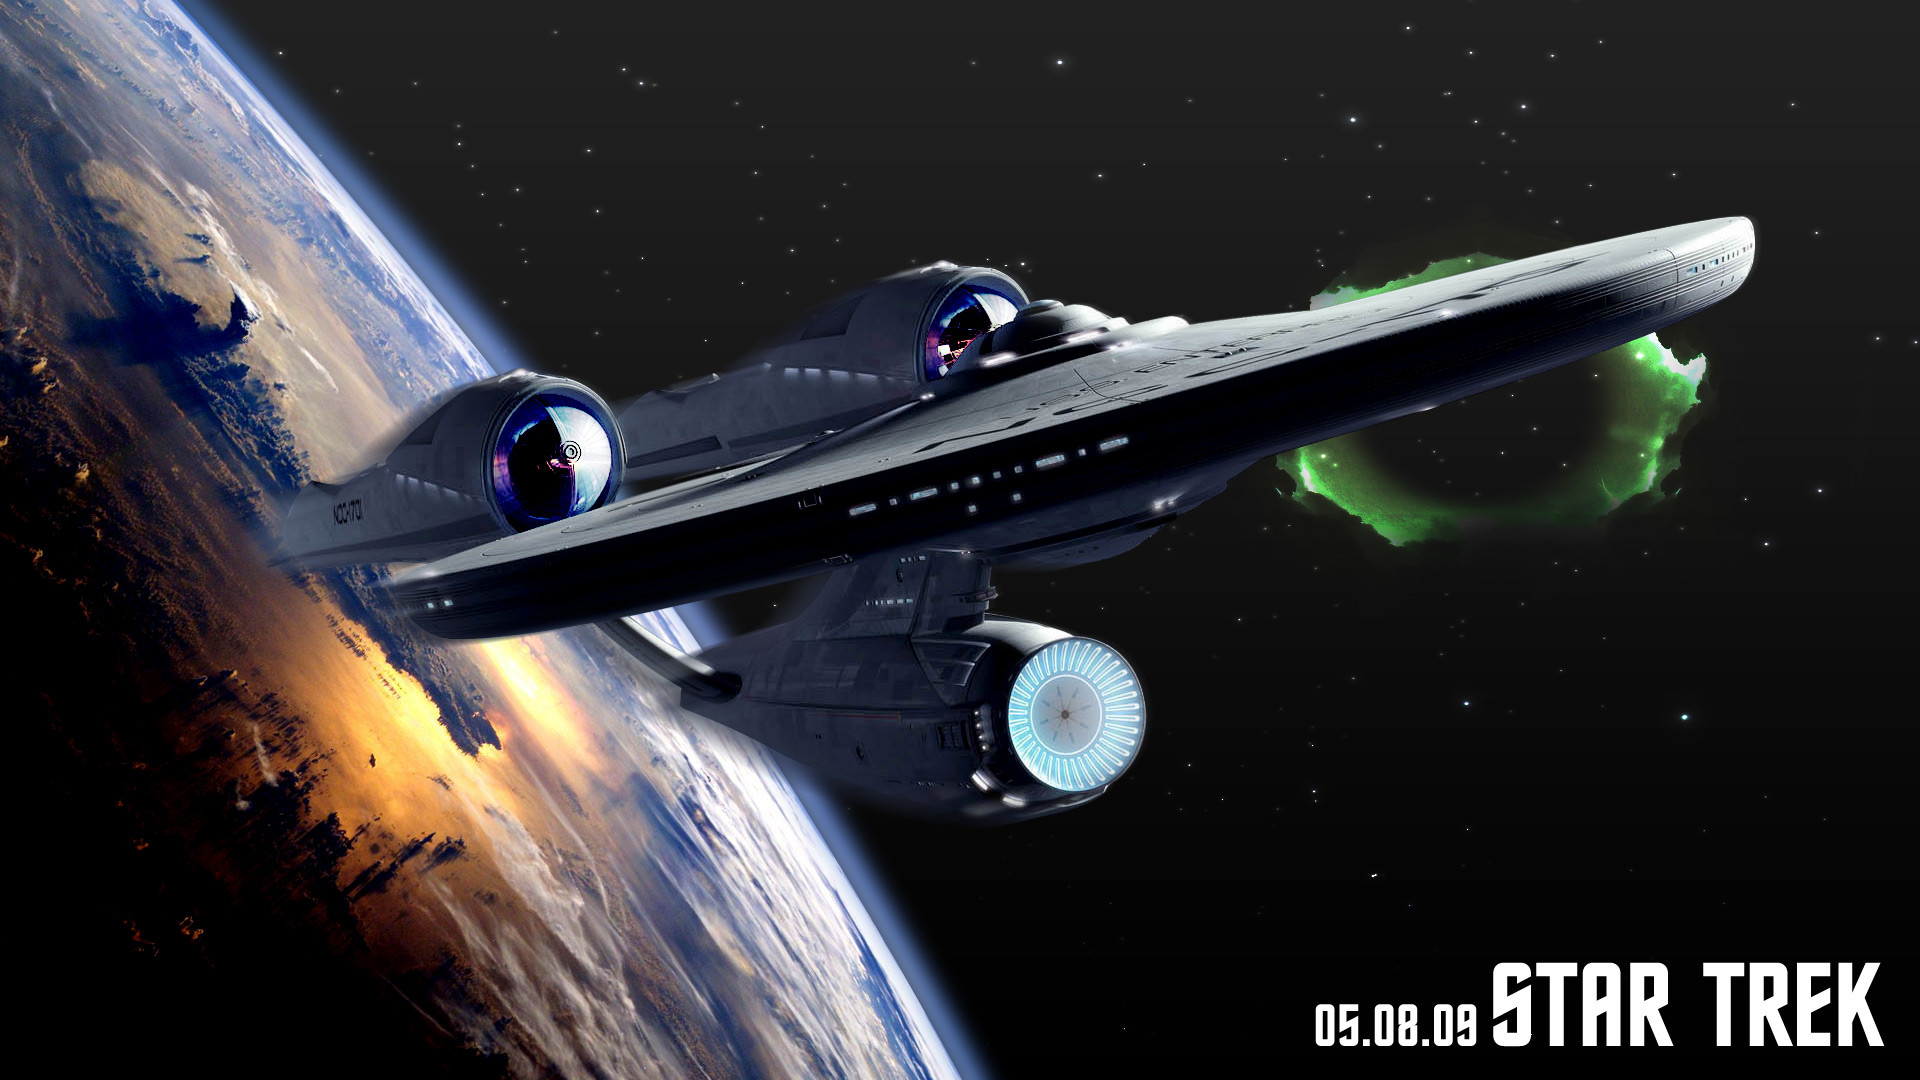 1920x1080 Star Trek HD Wallpaper | Hintergrund |  | ID:395610 - Wallpaper  Abyss